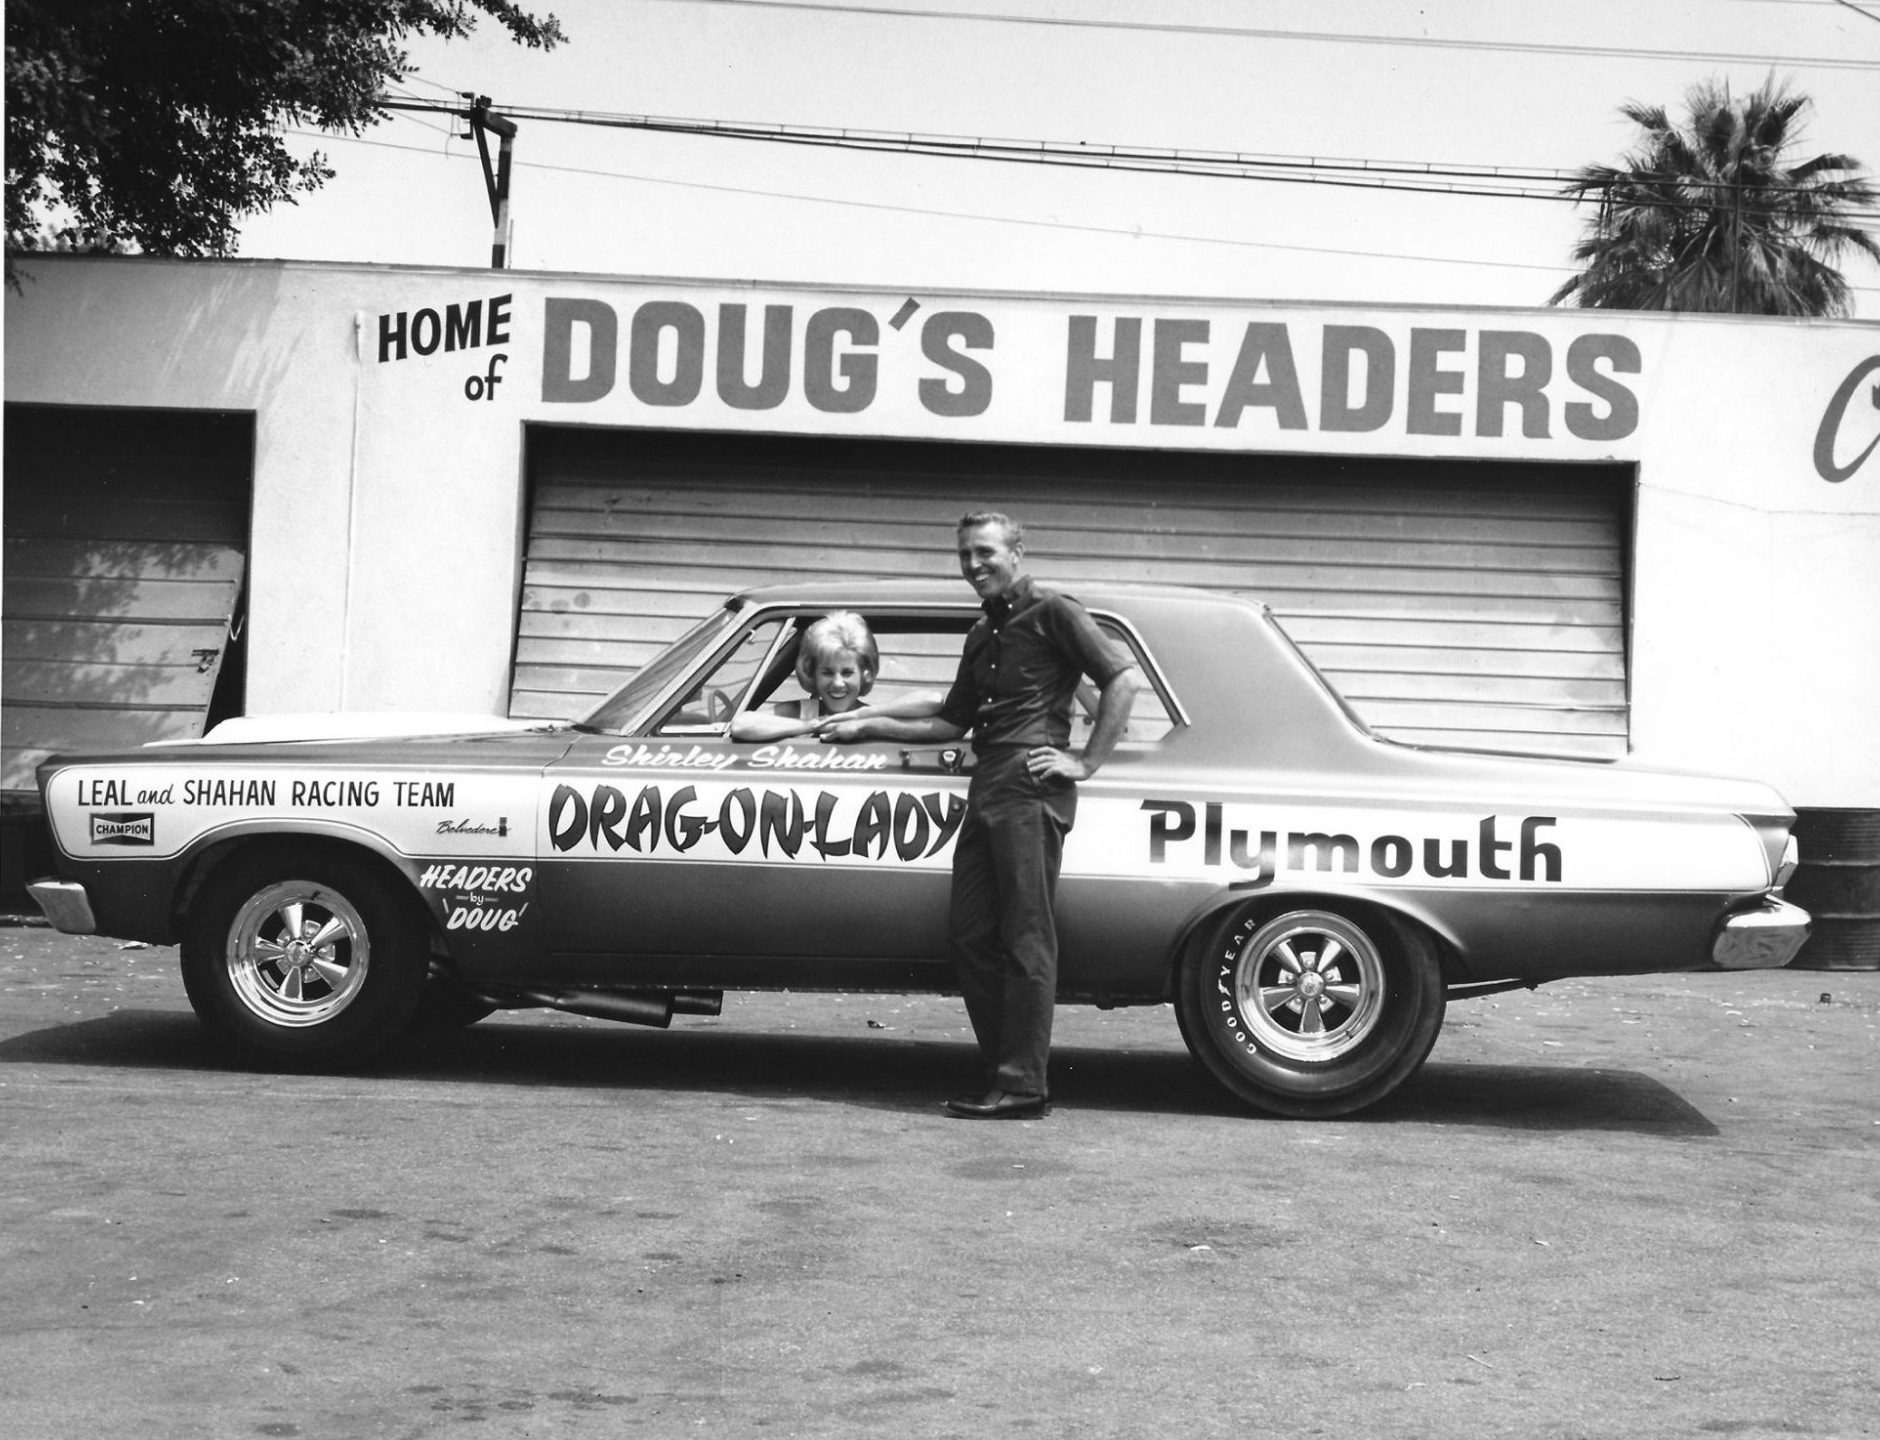 Shirley and H.L. posing with their drag car